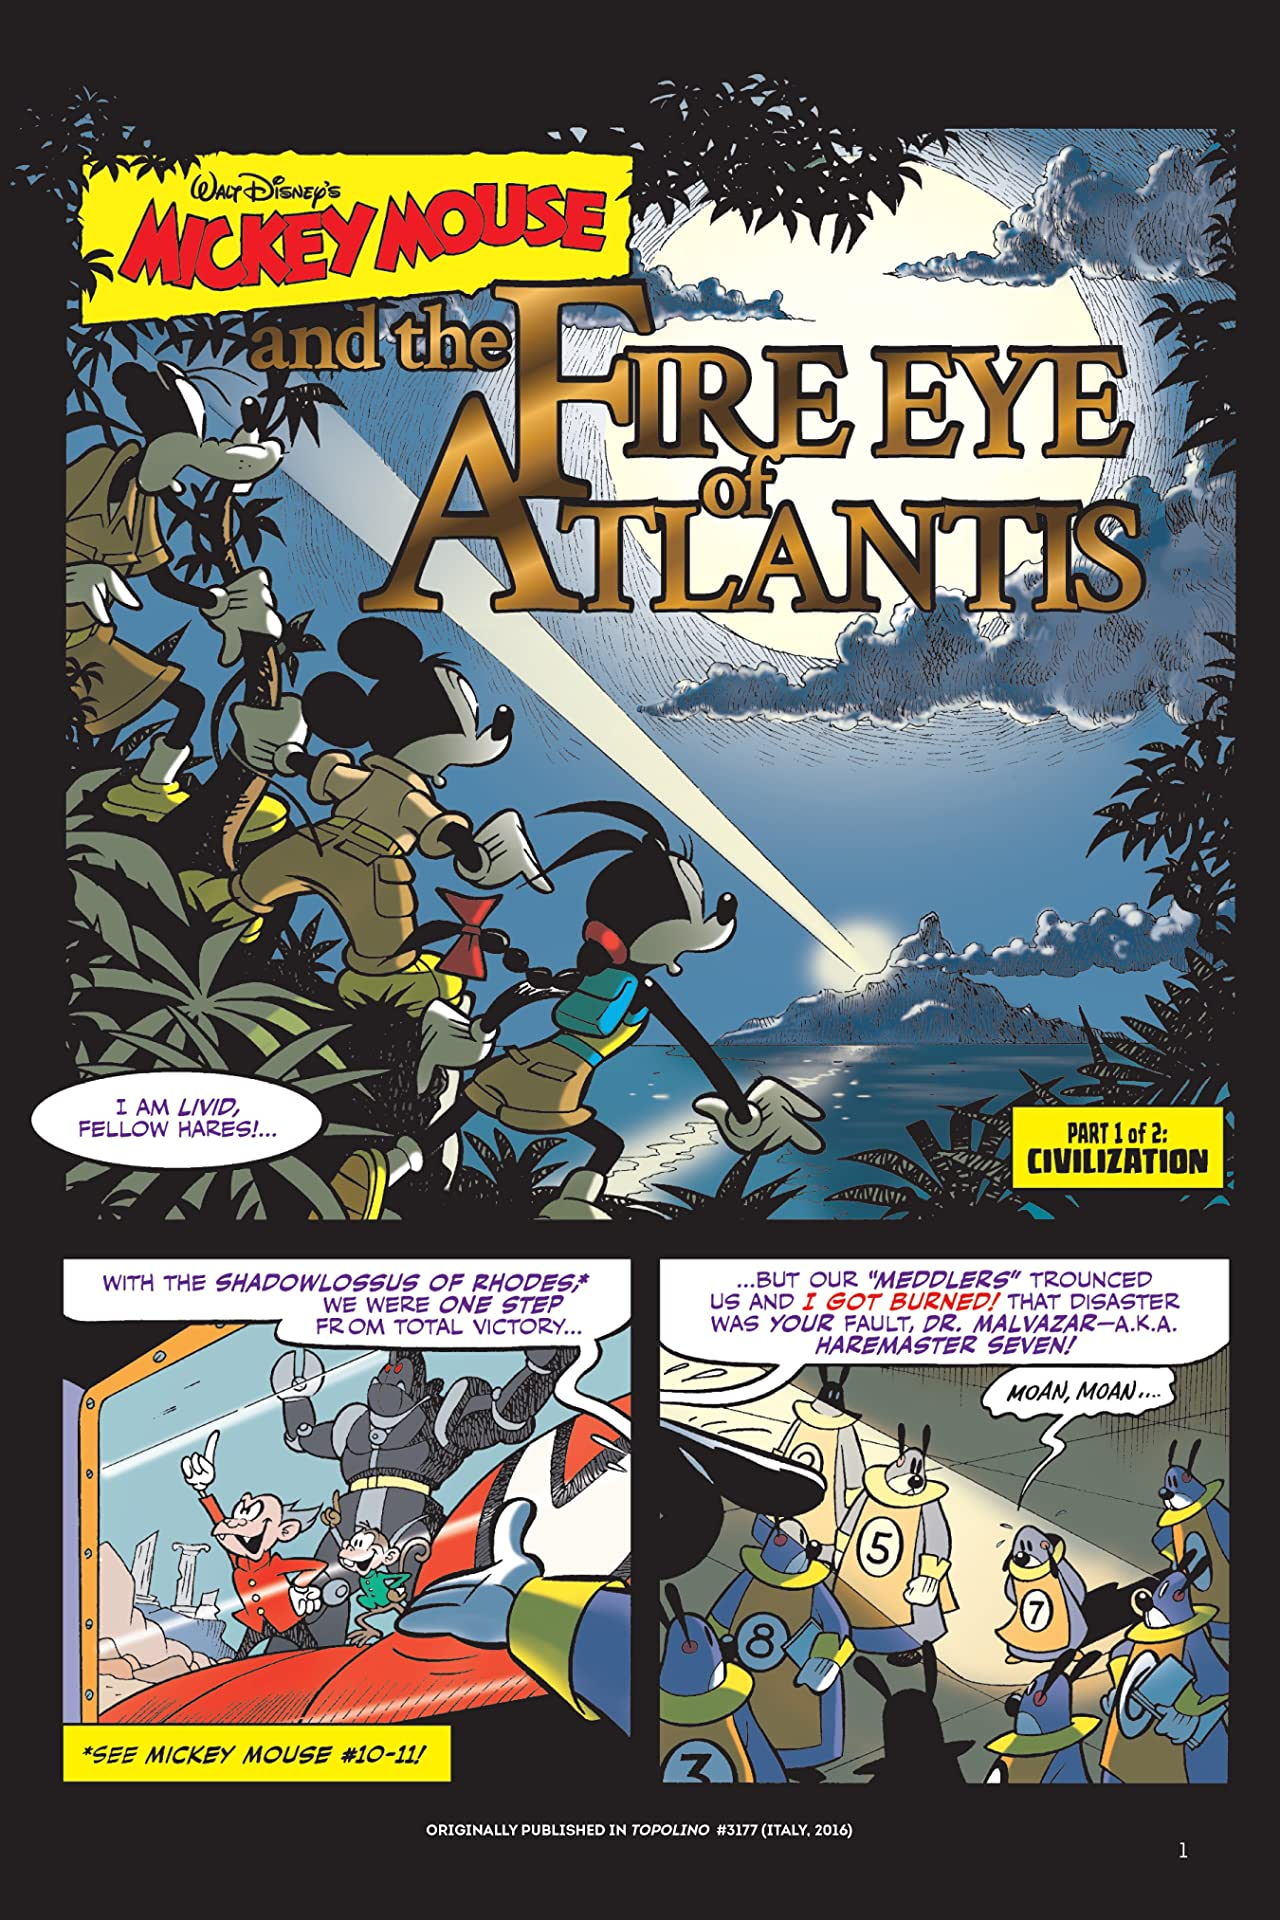 Mickey Mouse: Fire Eye of Atlantis